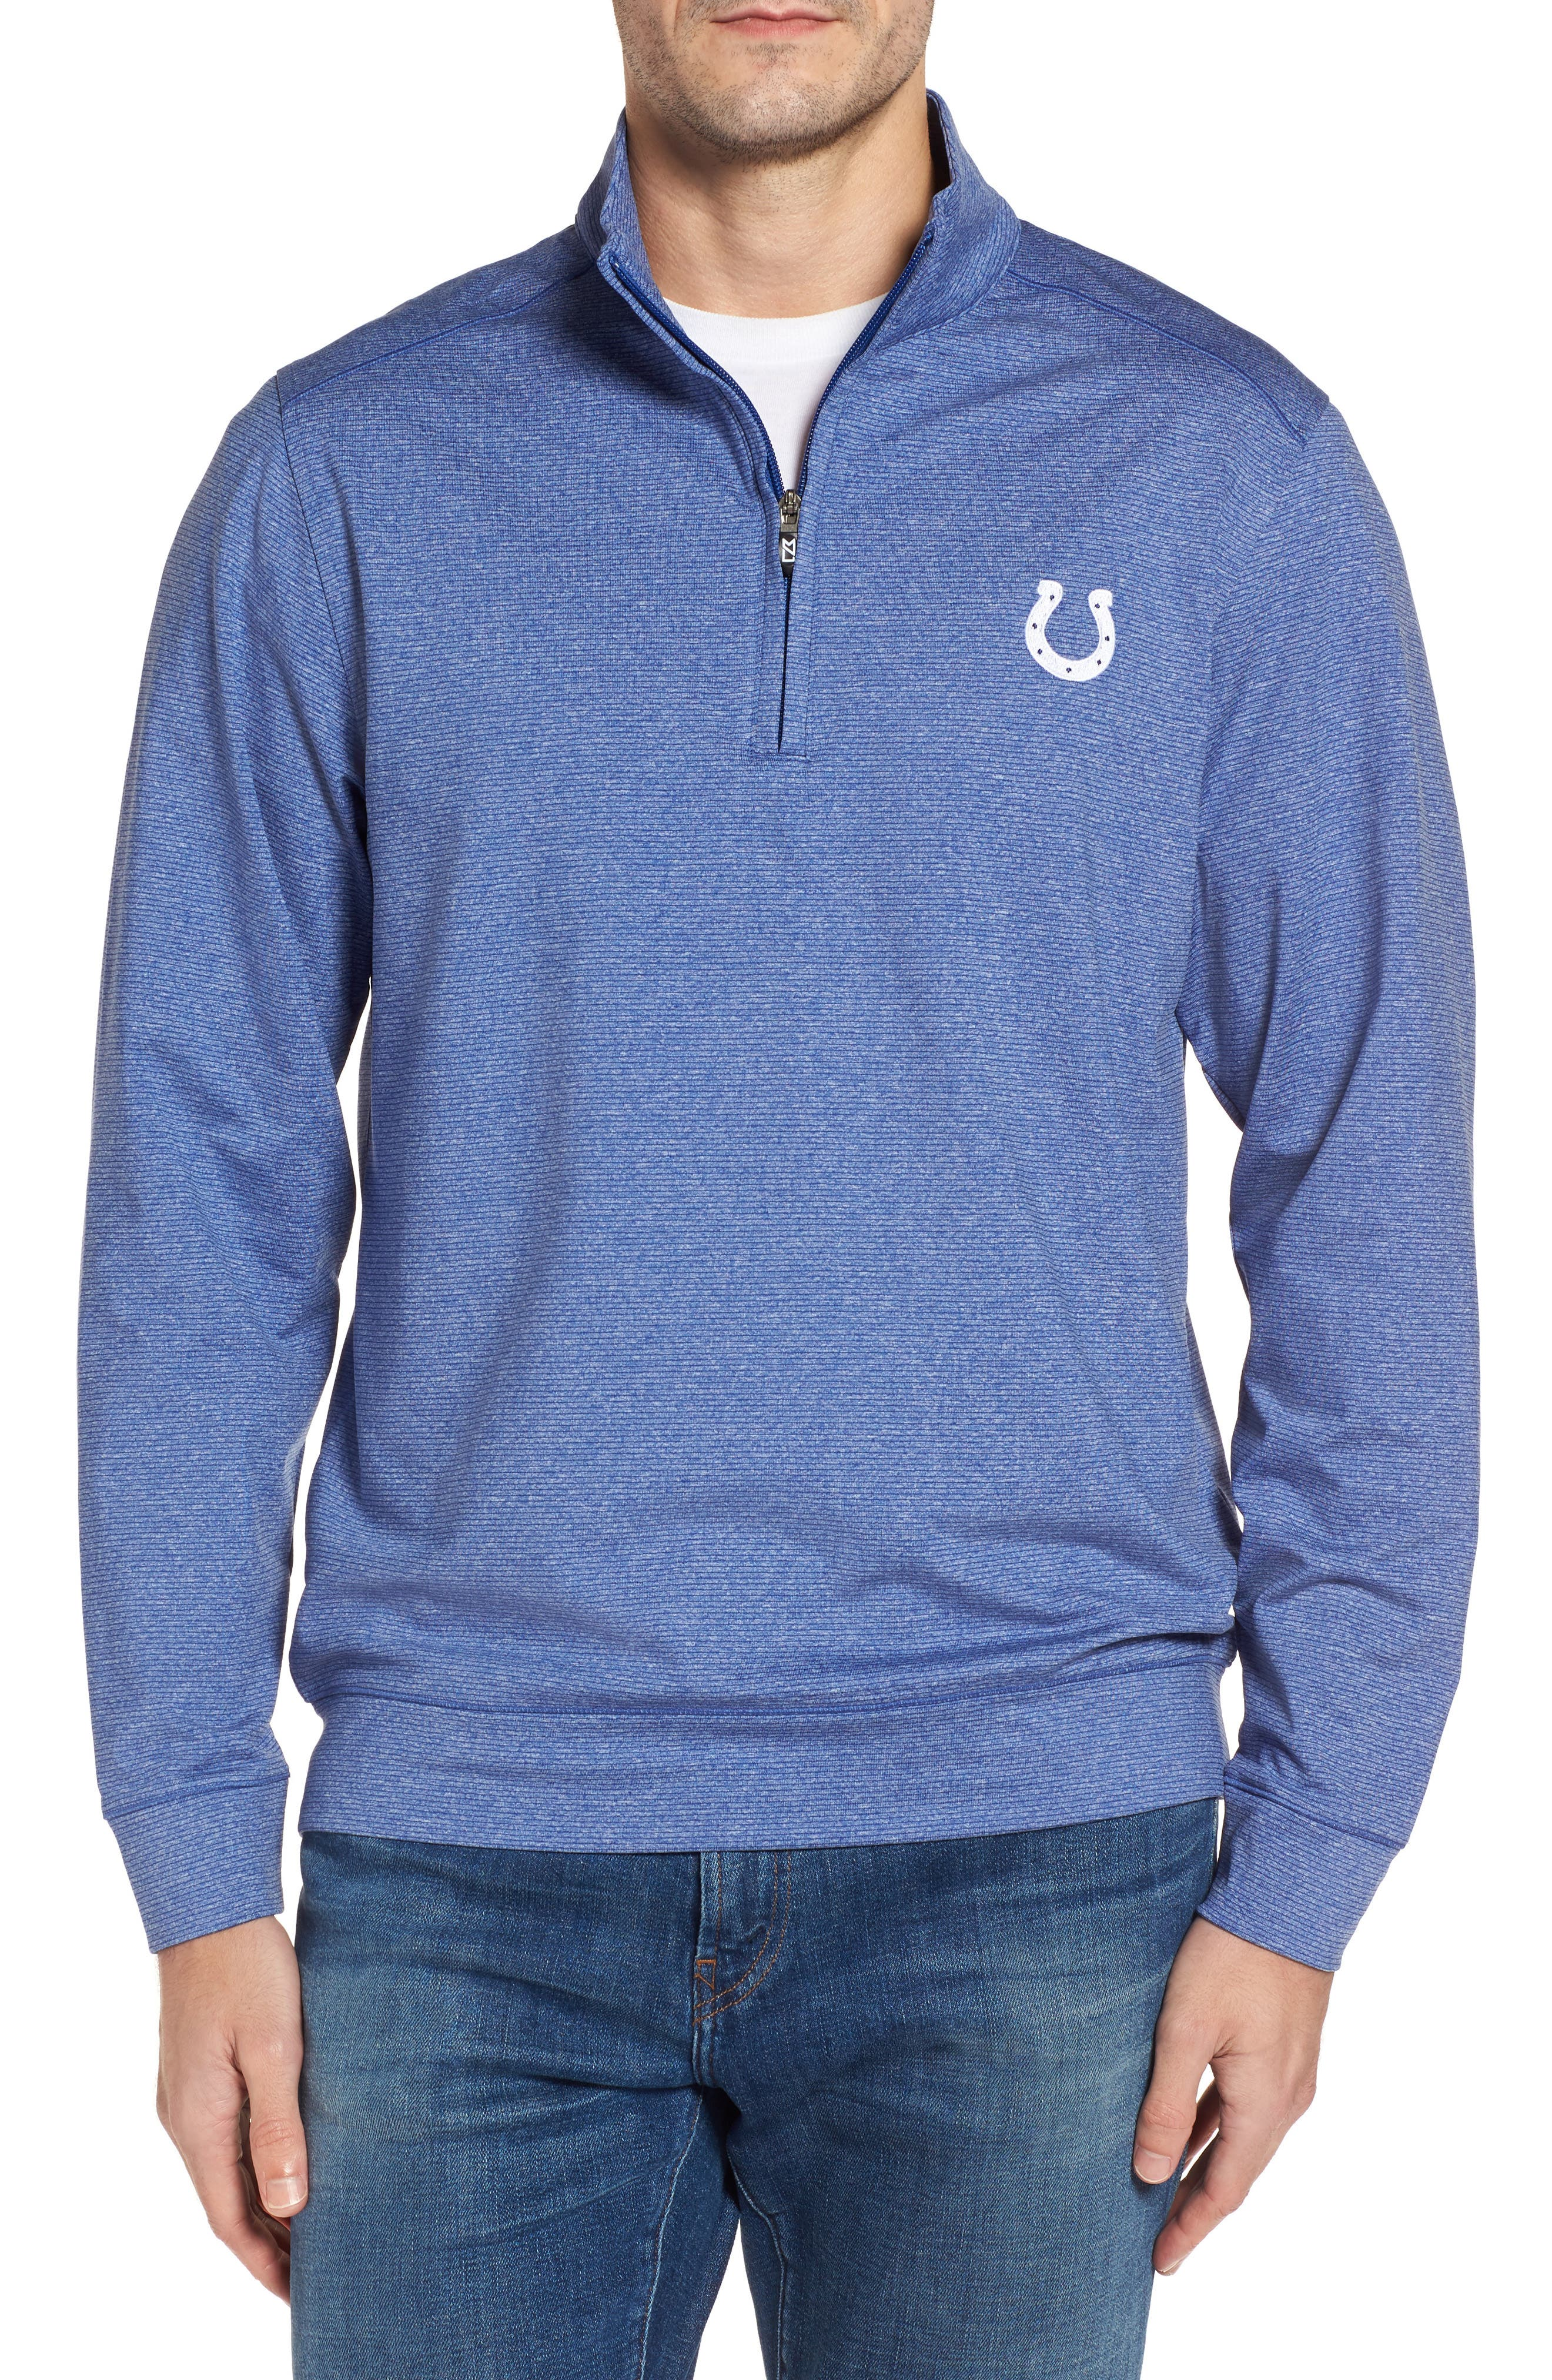 Shoreline - Indianapolis Colts Half Zip Pullover,                         Main,                         color, Tour Blue Heather